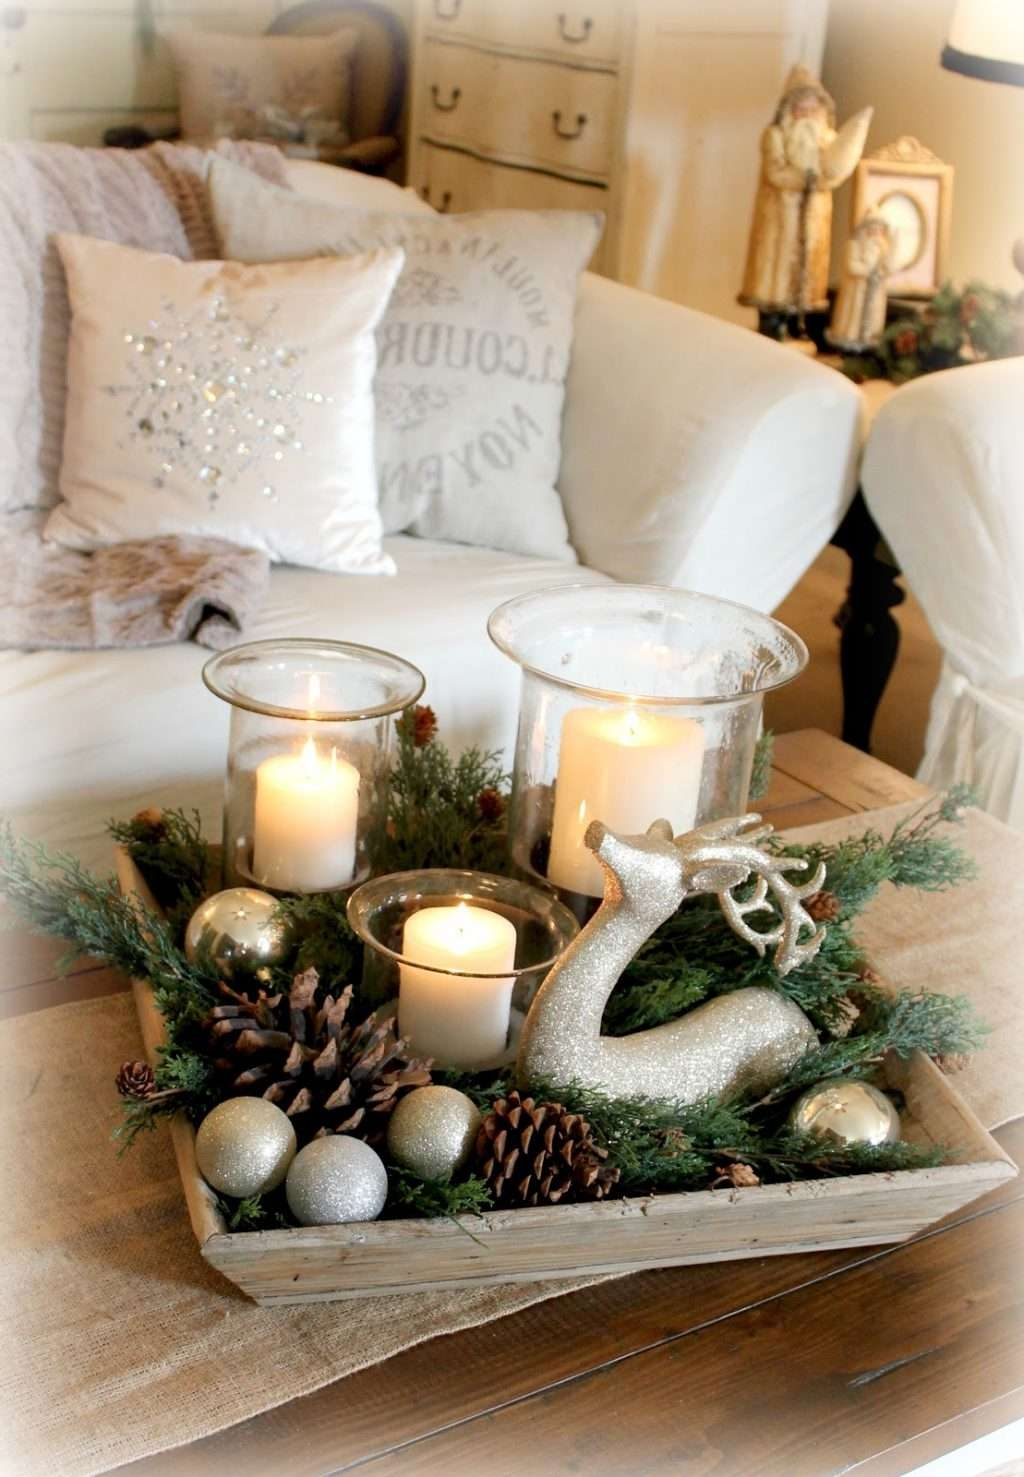 Rustic Christmas Table Decorations Rustic Christmas Coffee Table Throughout Fashionable Rustic Christmas Coffee Table Decors (View 2 of 20)